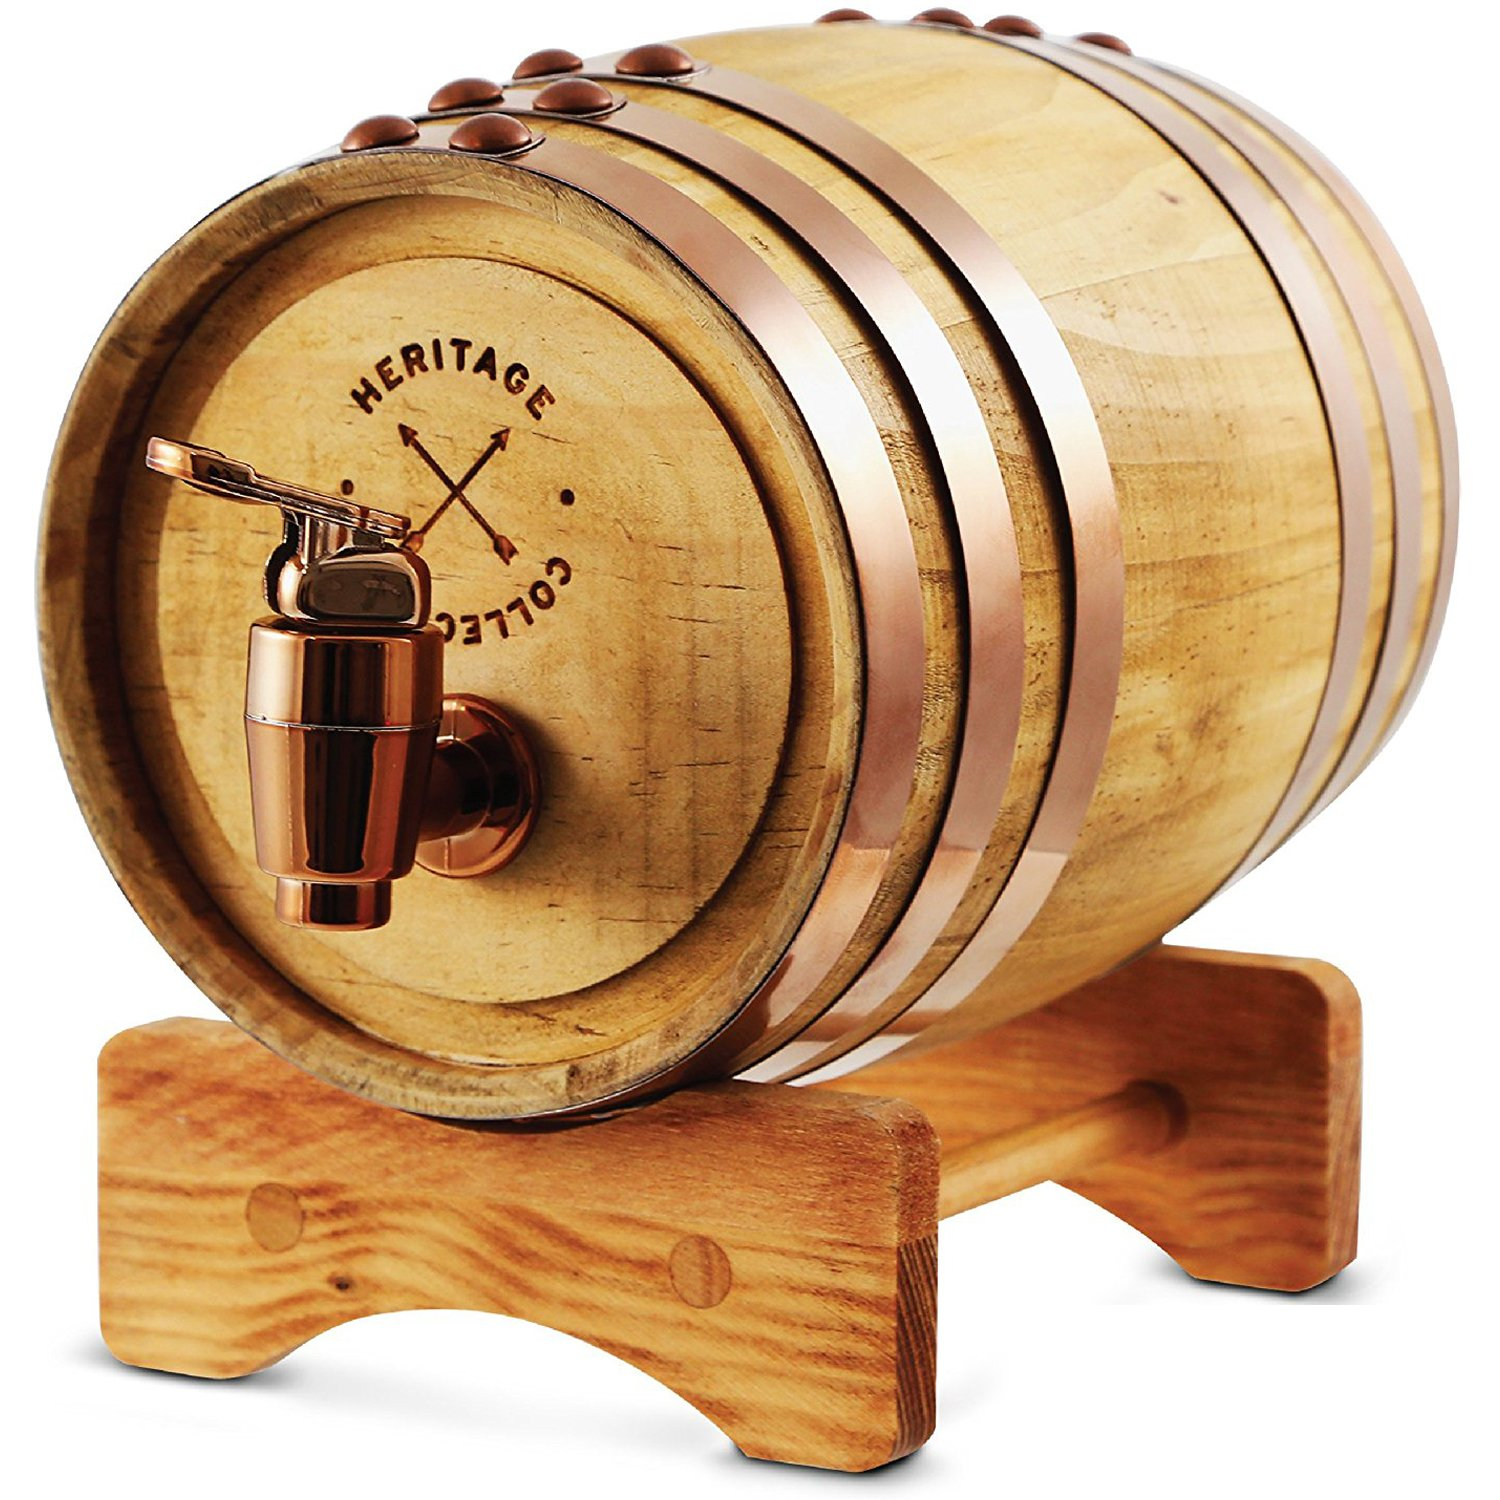 REFINERY AND CO Miniature Wood Whiskey Barrel Dispenser & Mini Infuser 800 ml/27 fl oz Volume, for Serving, Table Home Accent Display, Storage of Spirits, Liquors; Great Gift for Men and Women